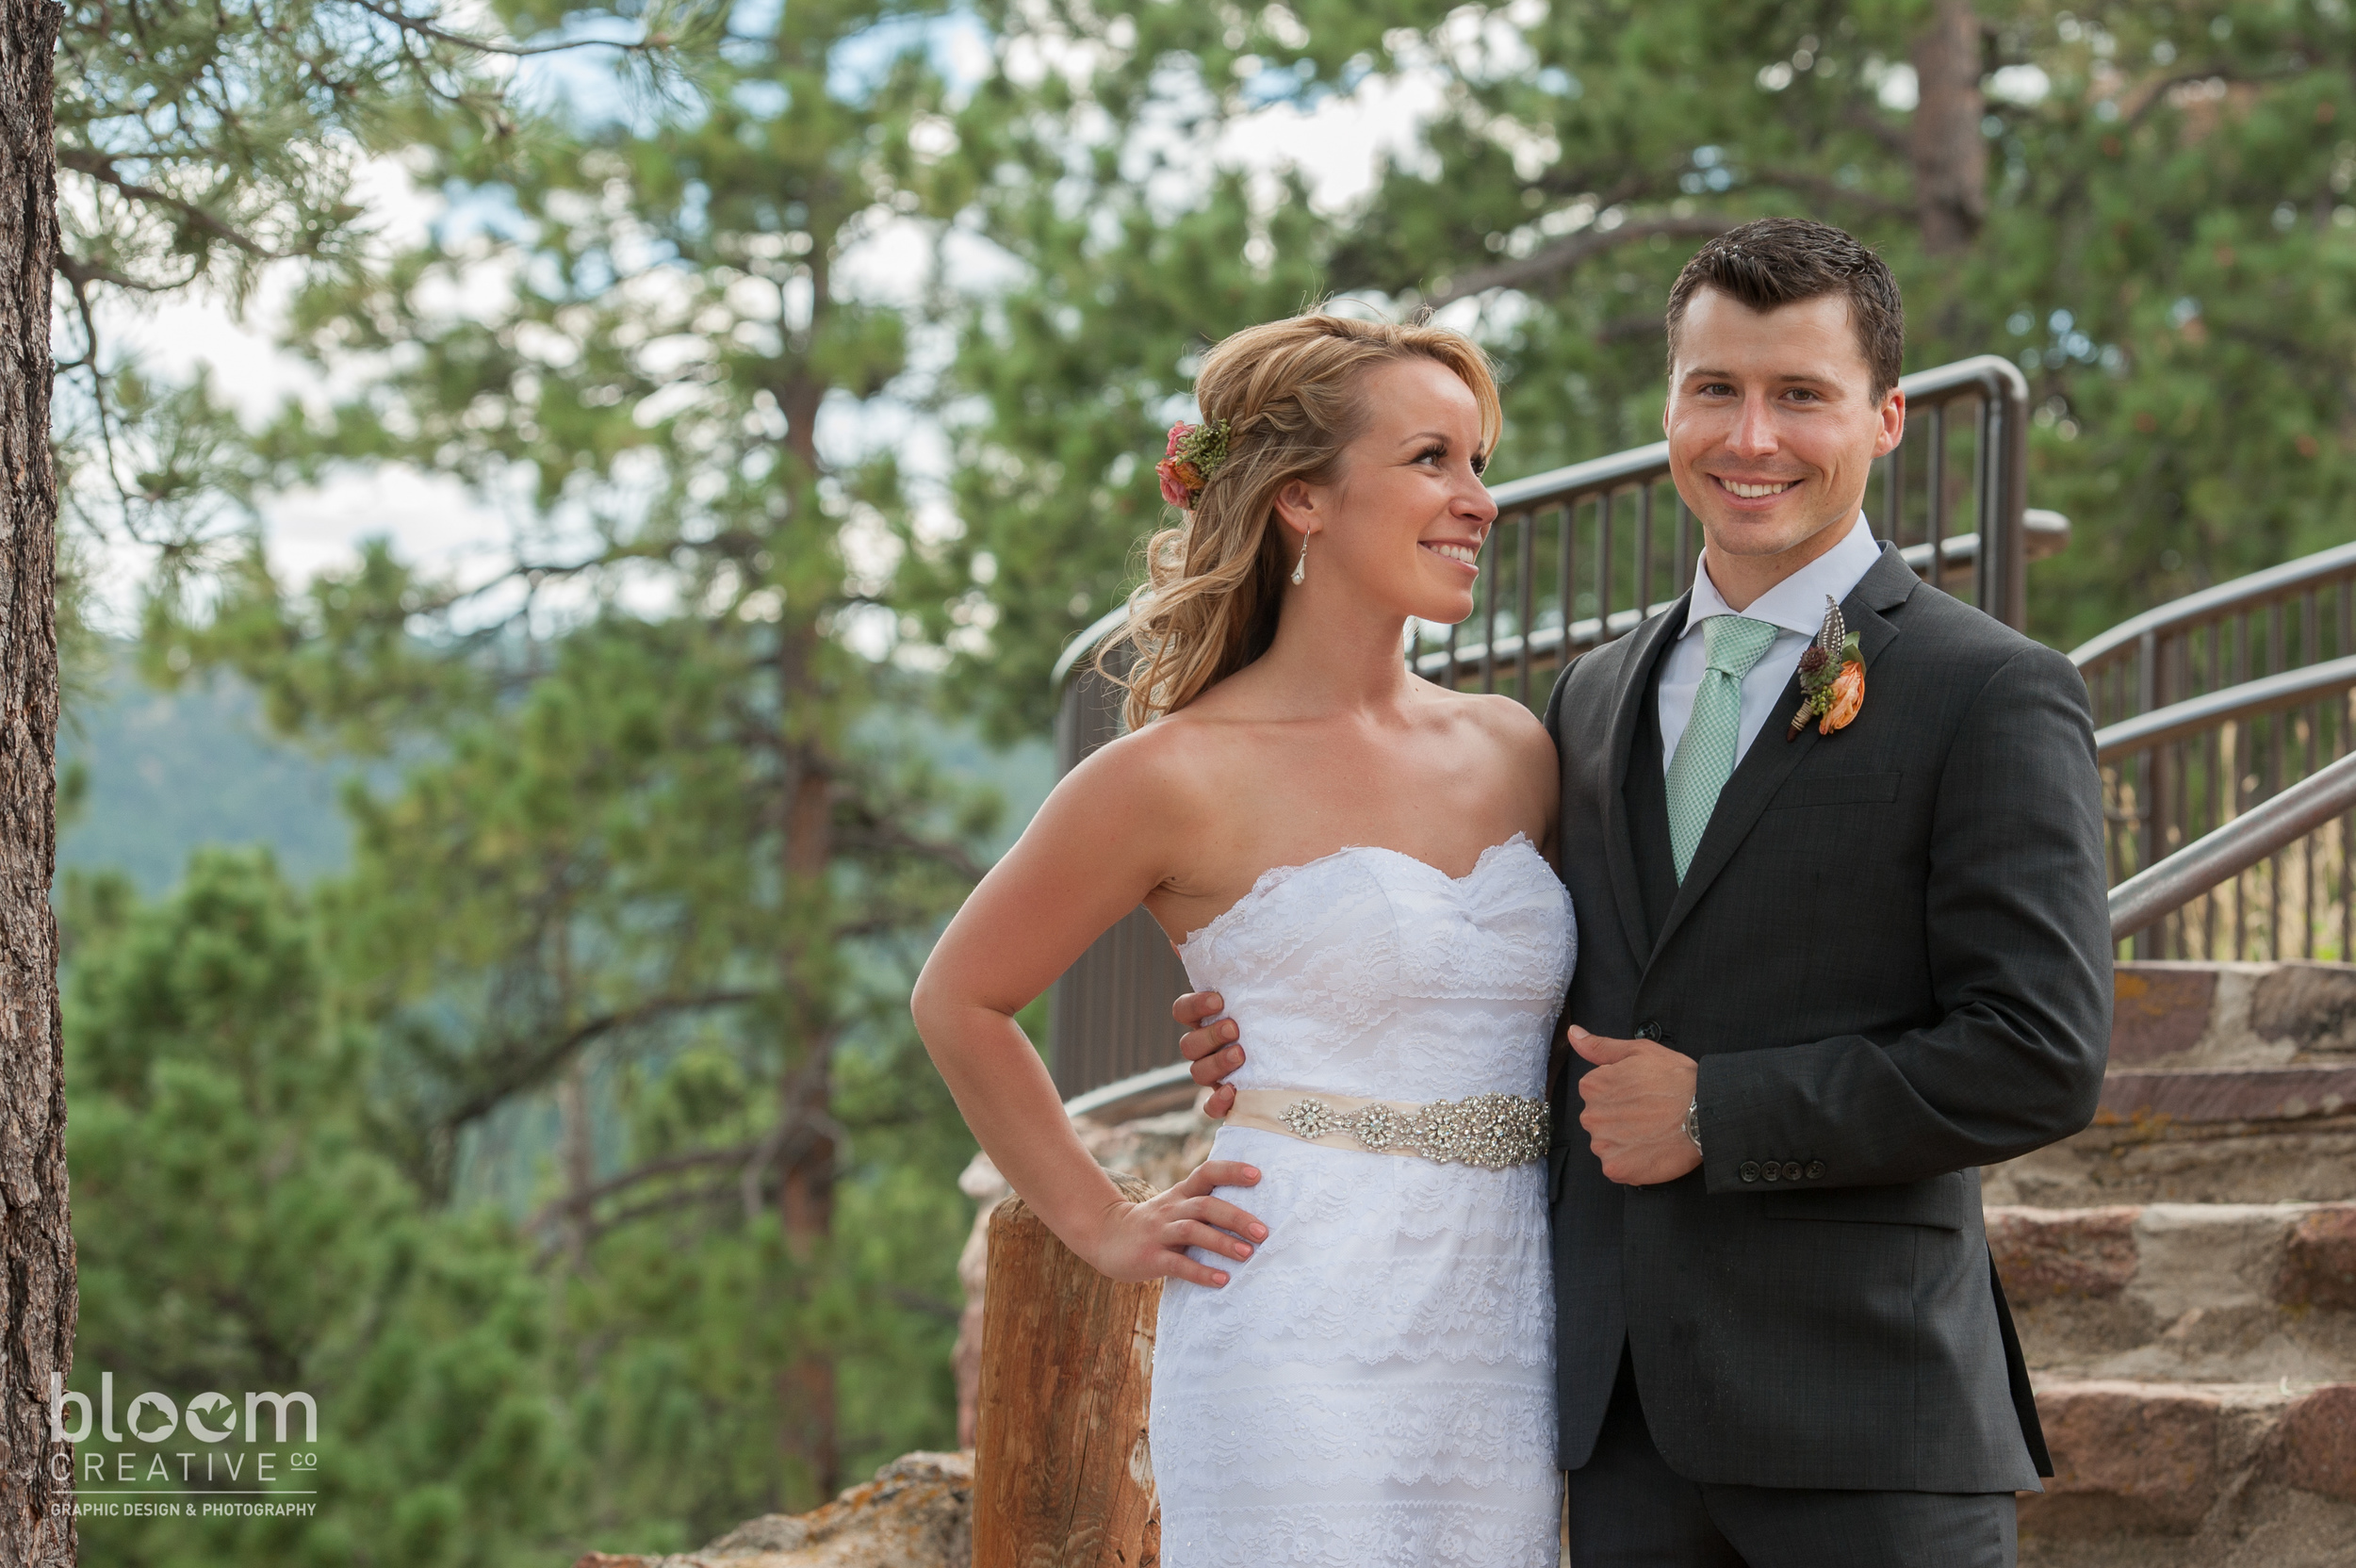 BoulderWeddingCouple